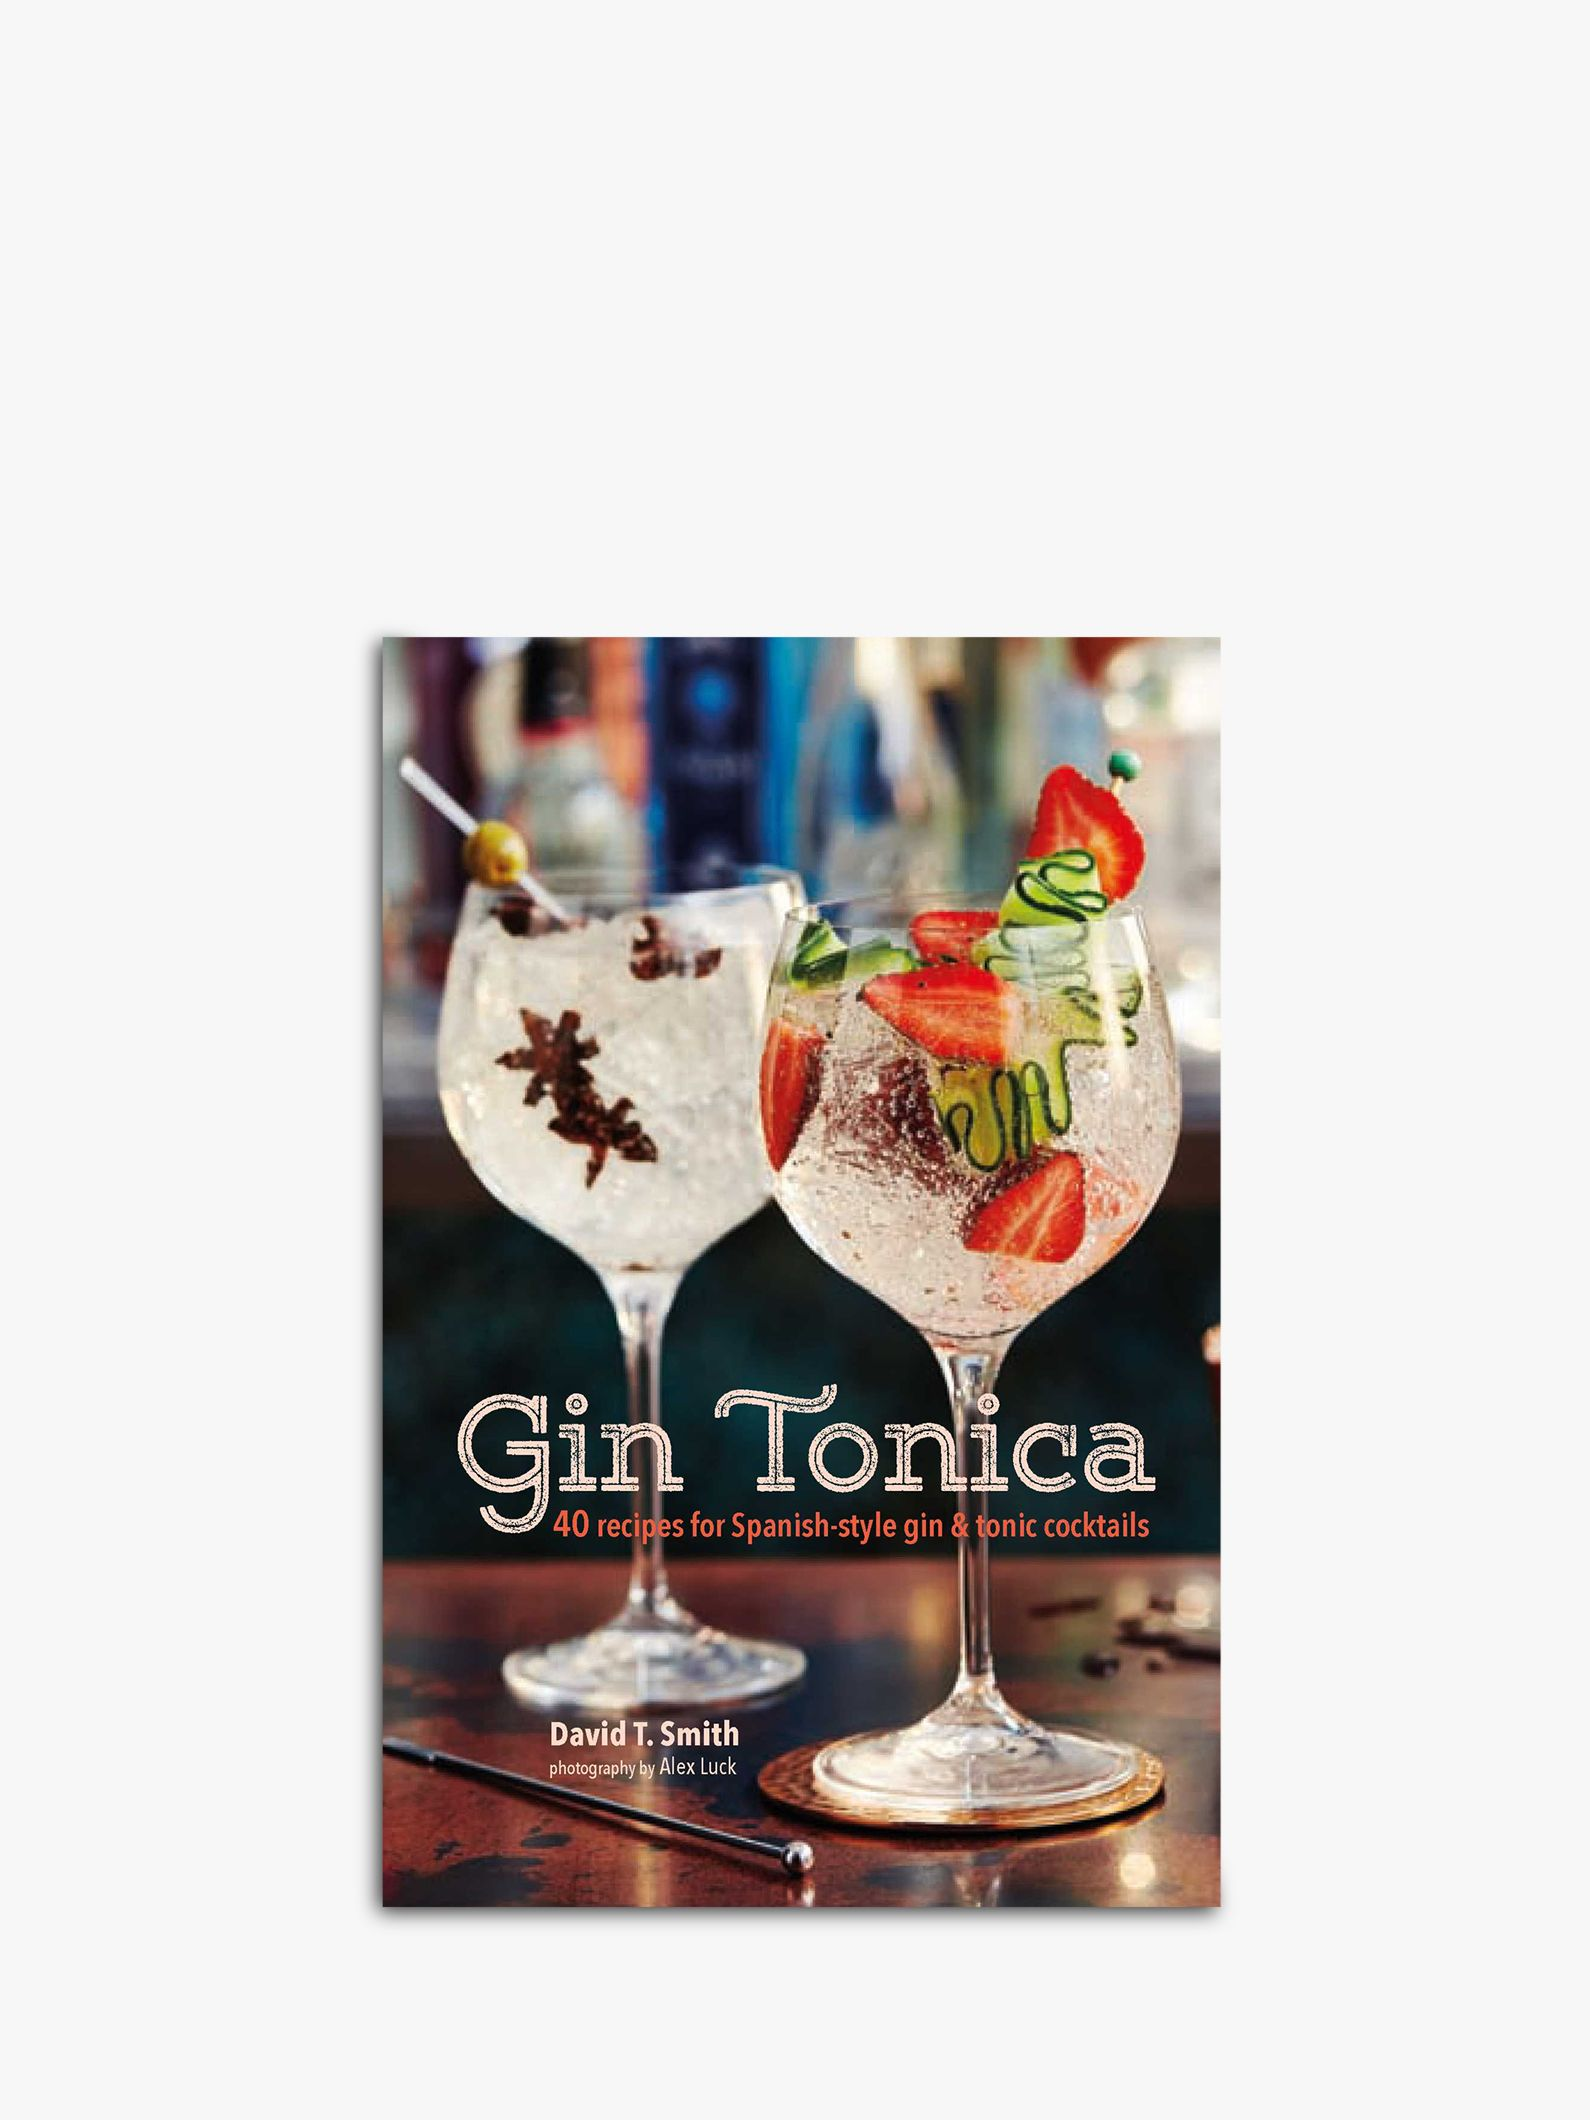 Gin Tonica Gin Tonic Cocktail Recipe Book At John Lewis Partners